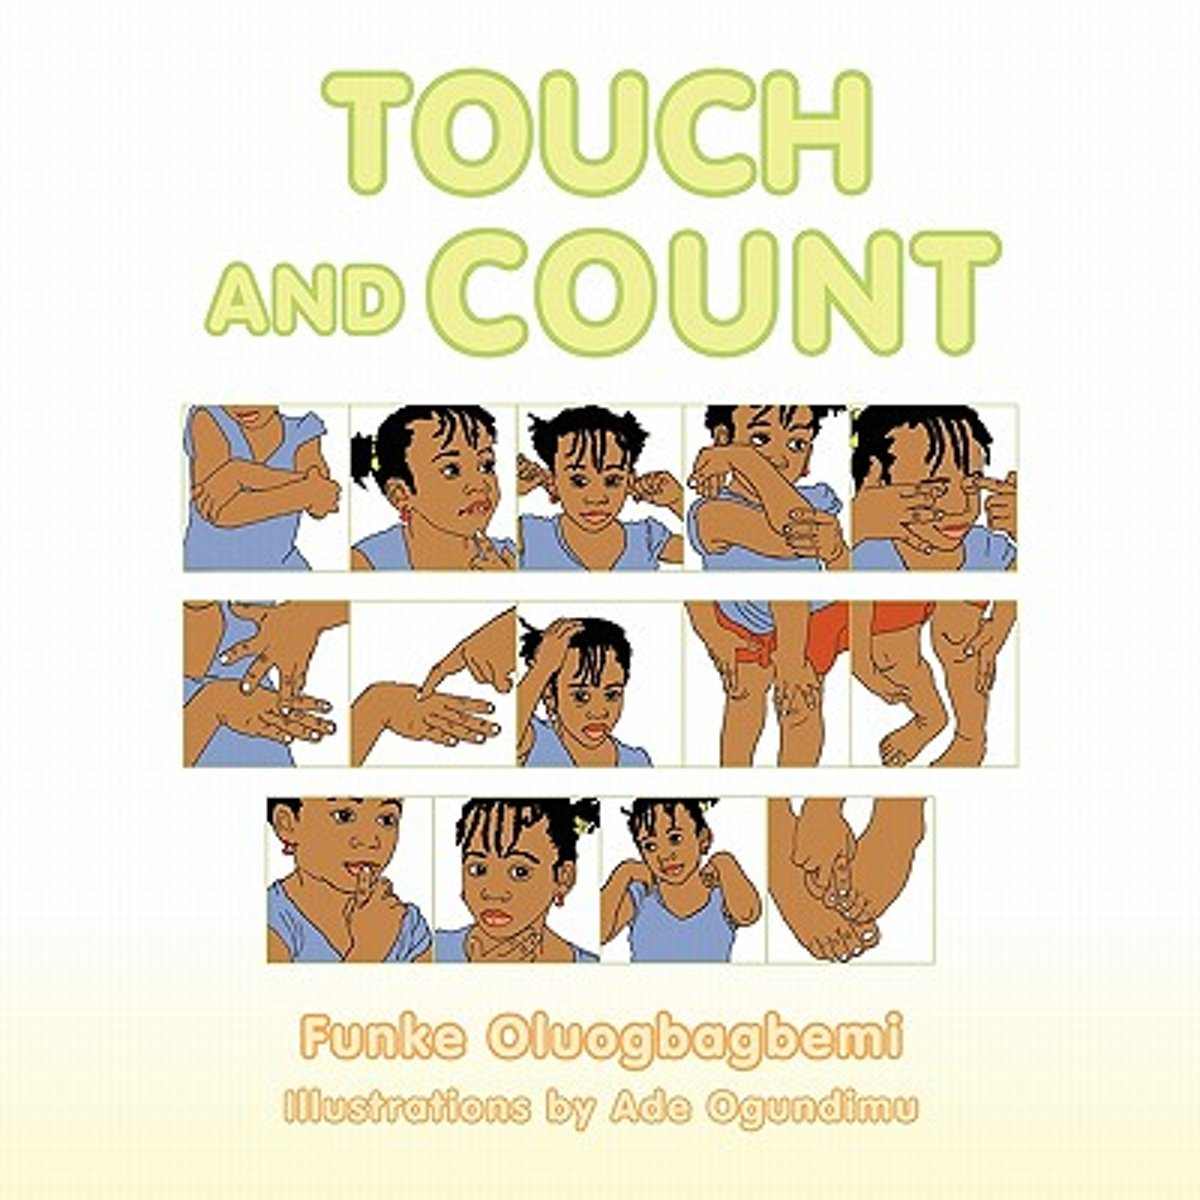 Touch and Count